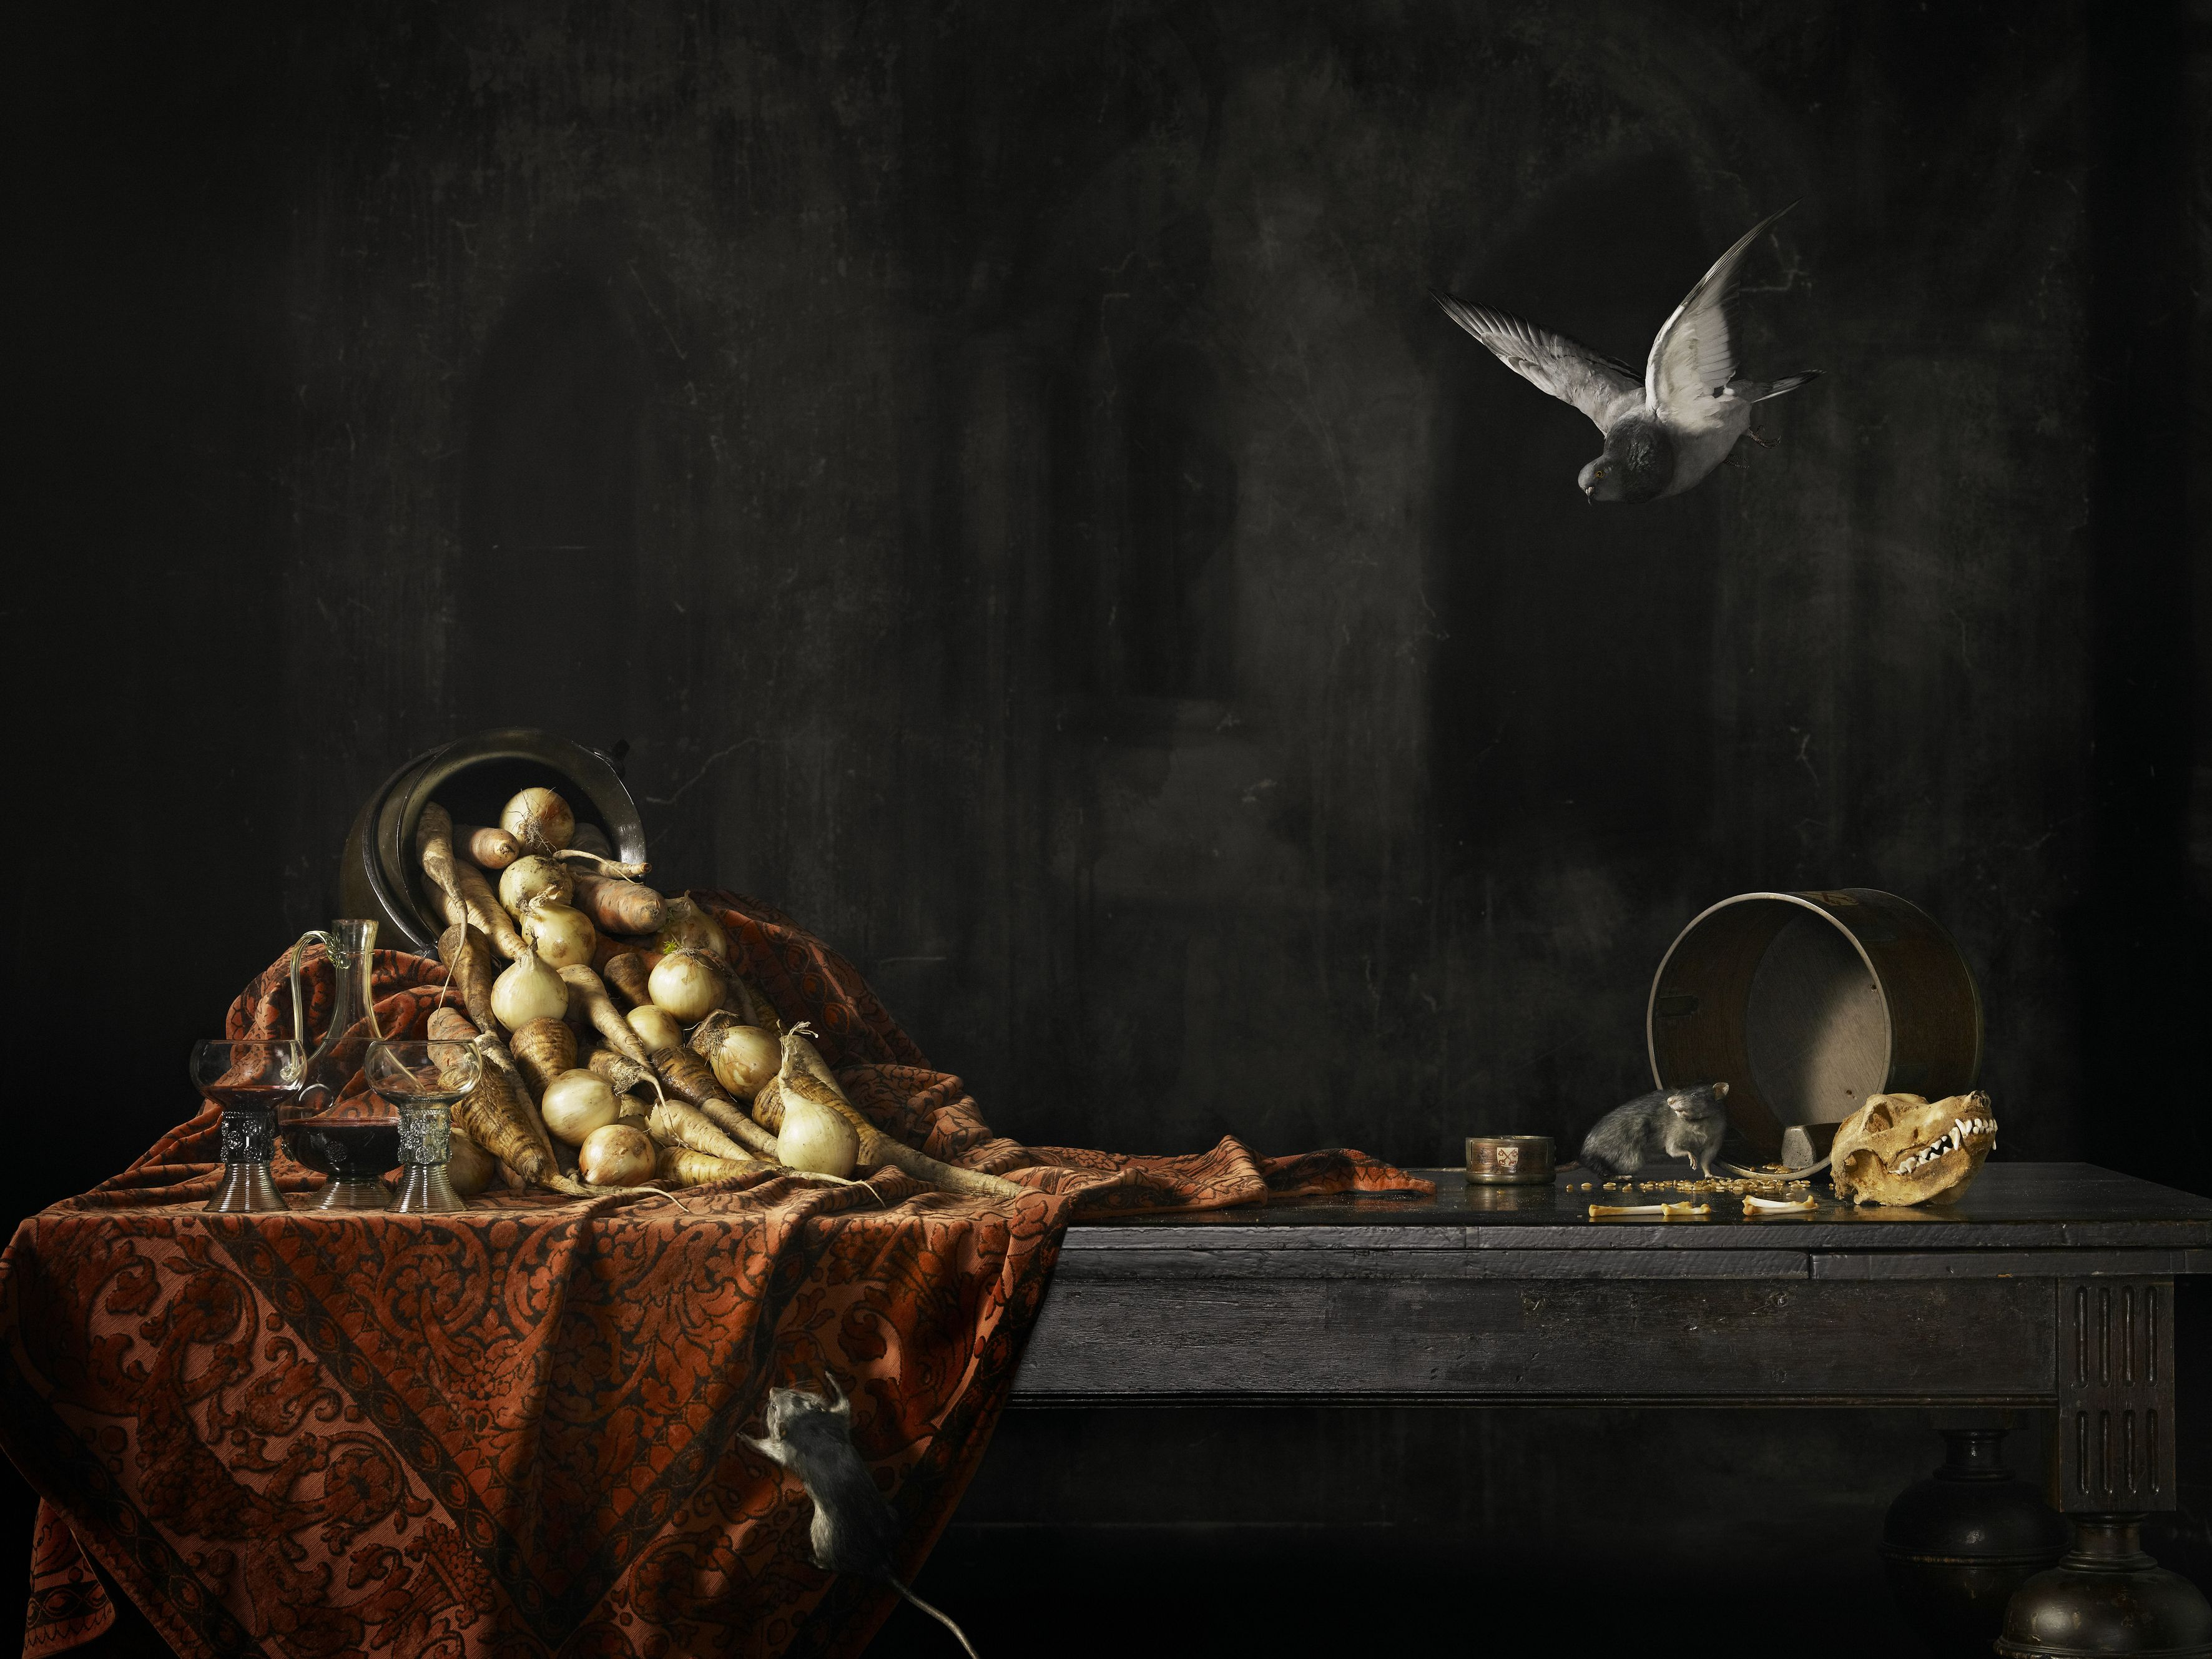 Club America Wallpapers 3d The Siege And Relief Of Leiden By Erwin Olaf Showme Design